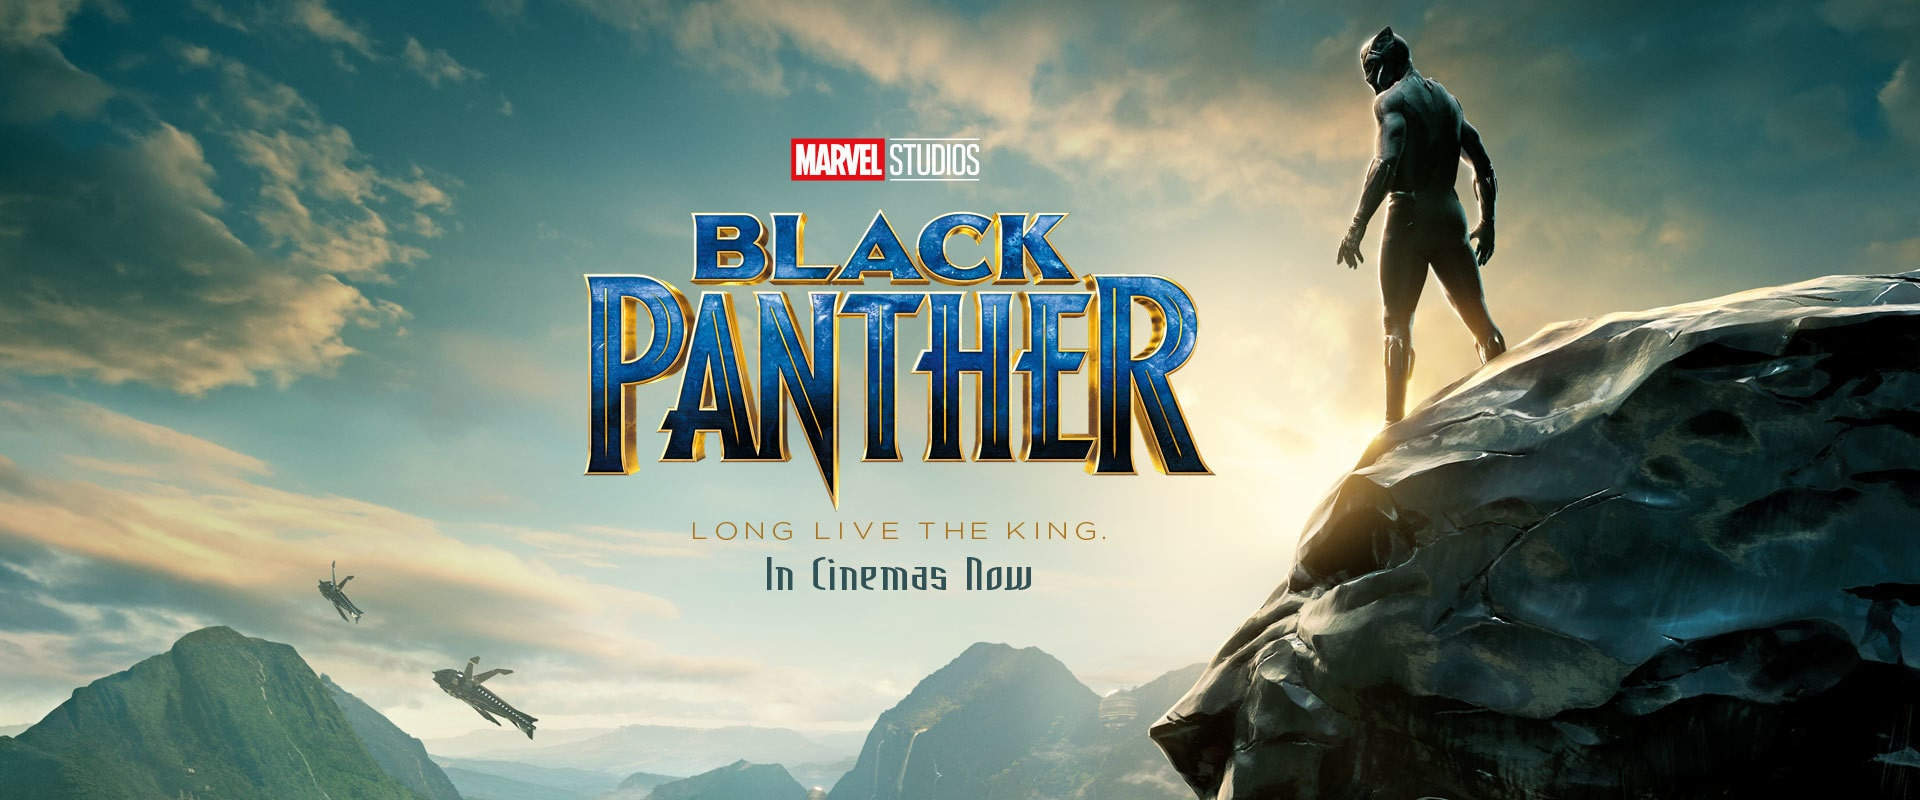 Marvel Studios Black Panther